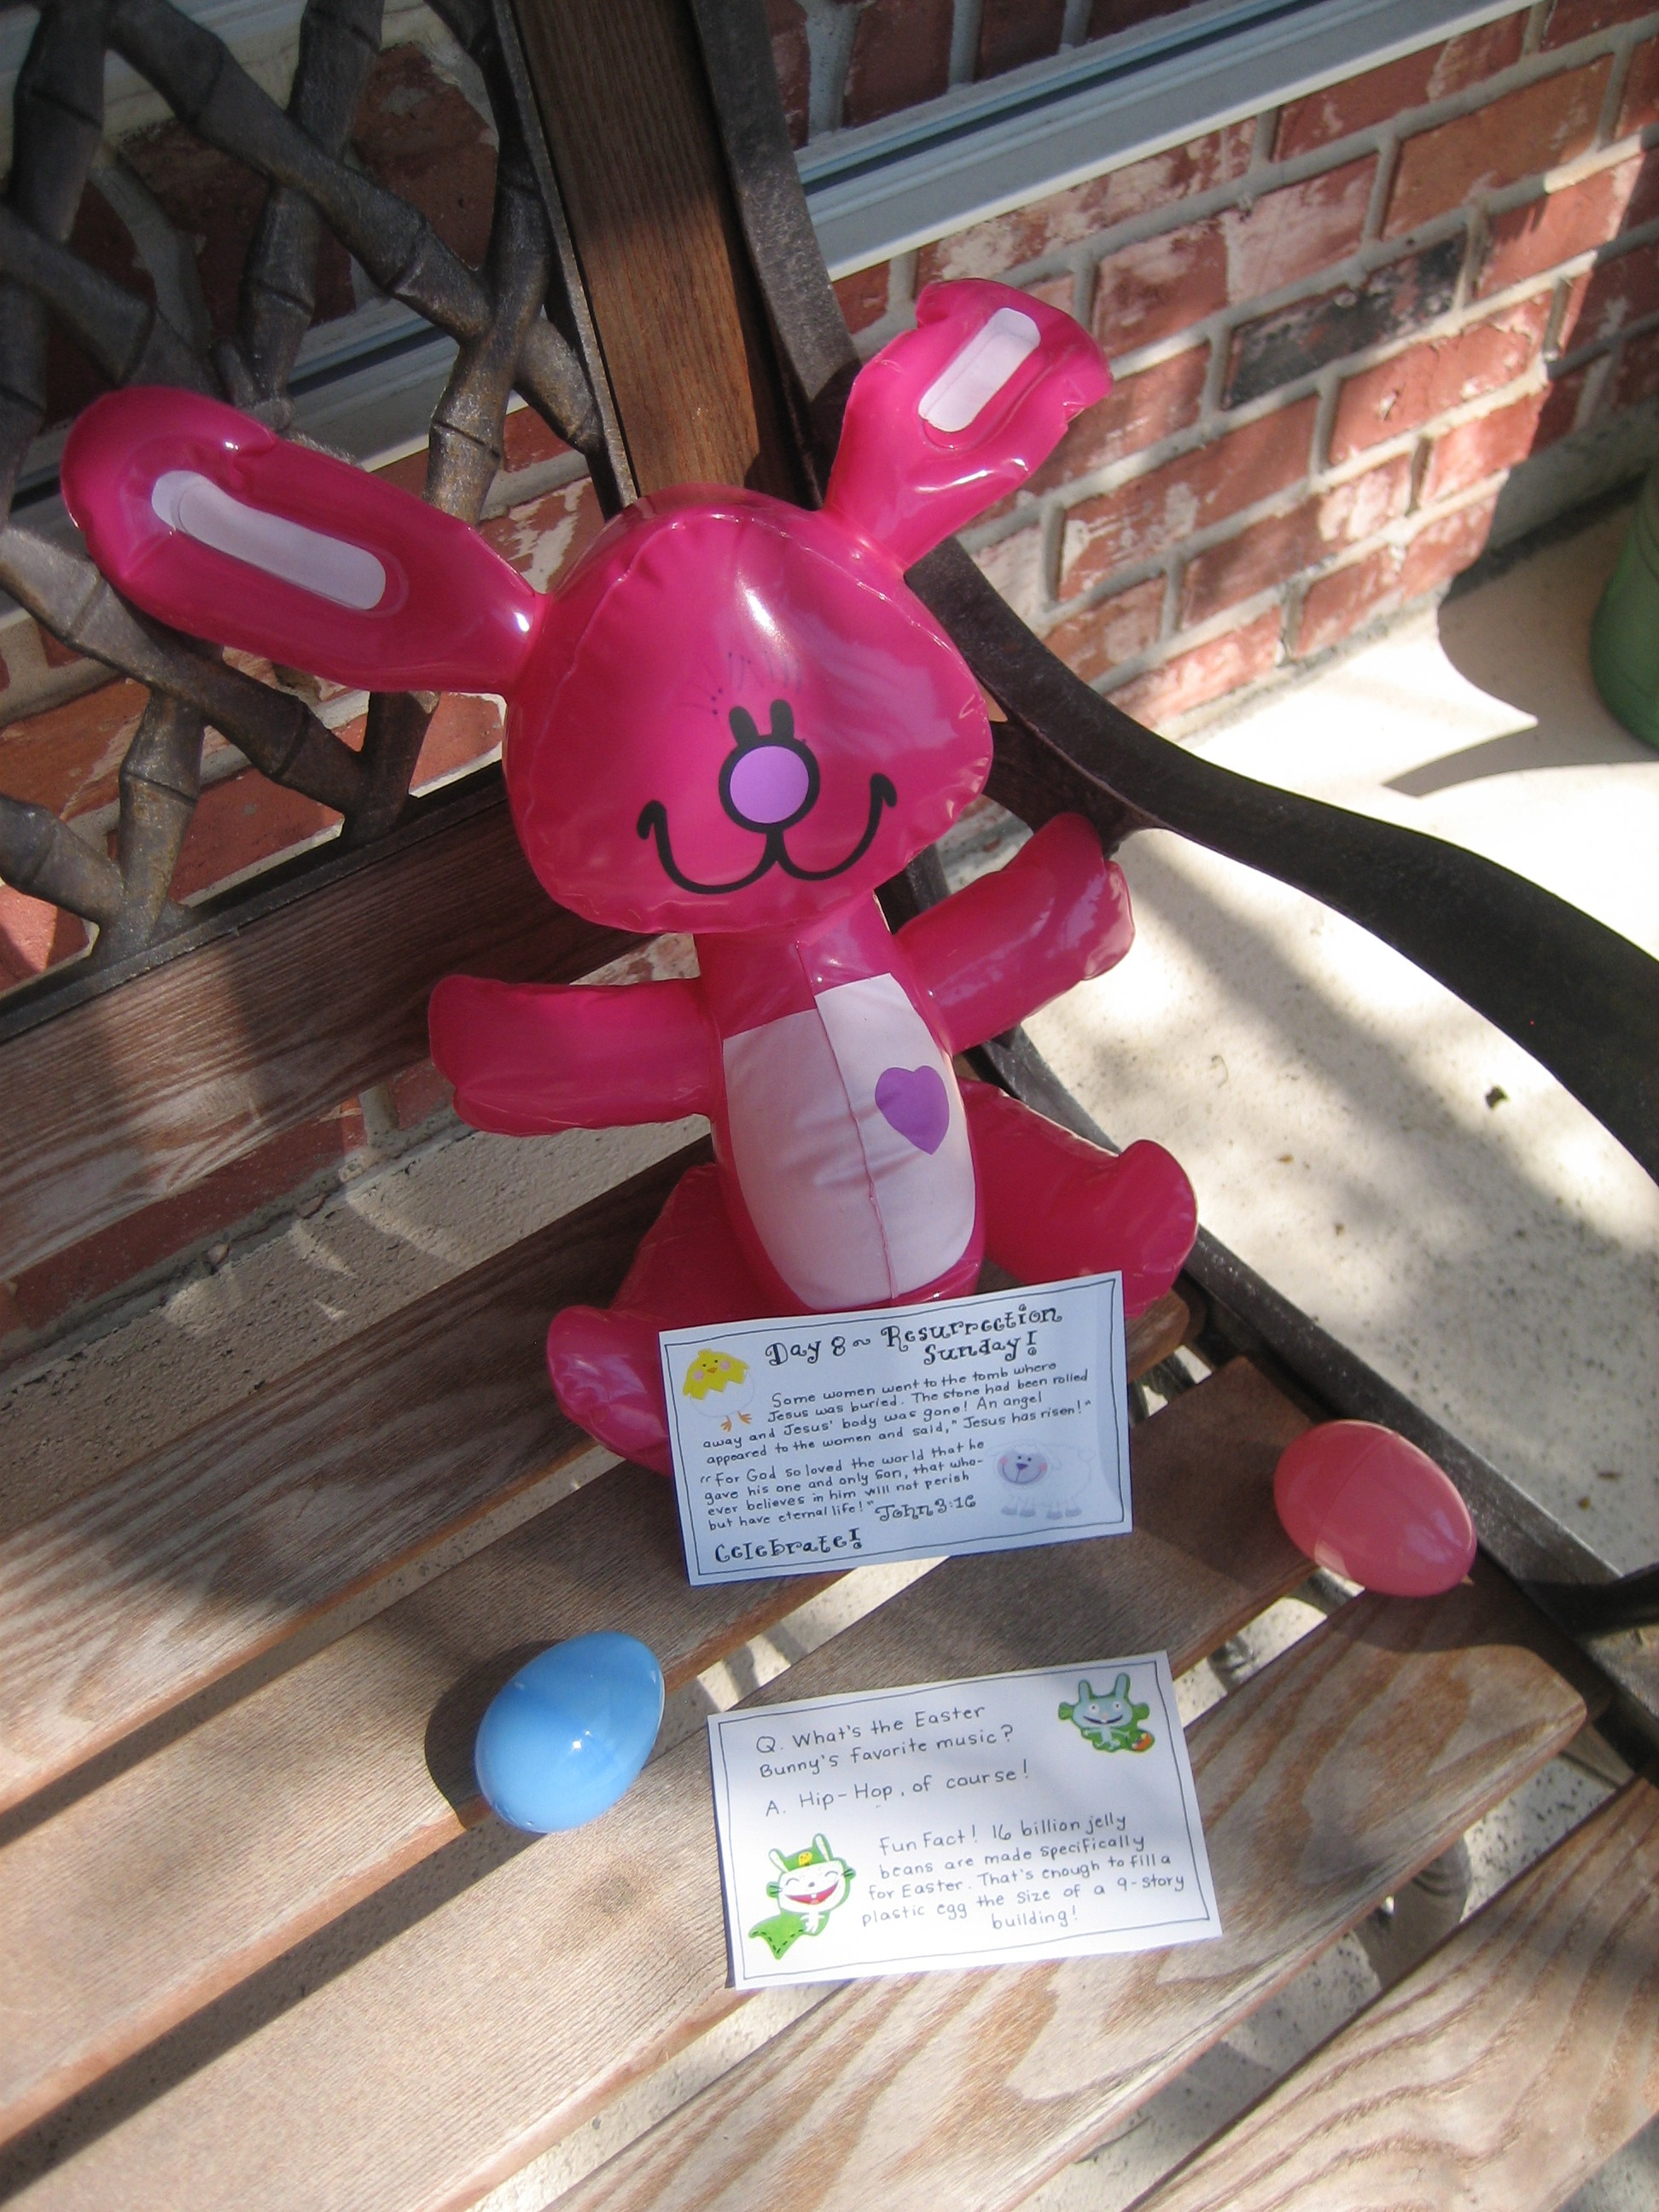 Inflatable Bunnies And The Easter Story